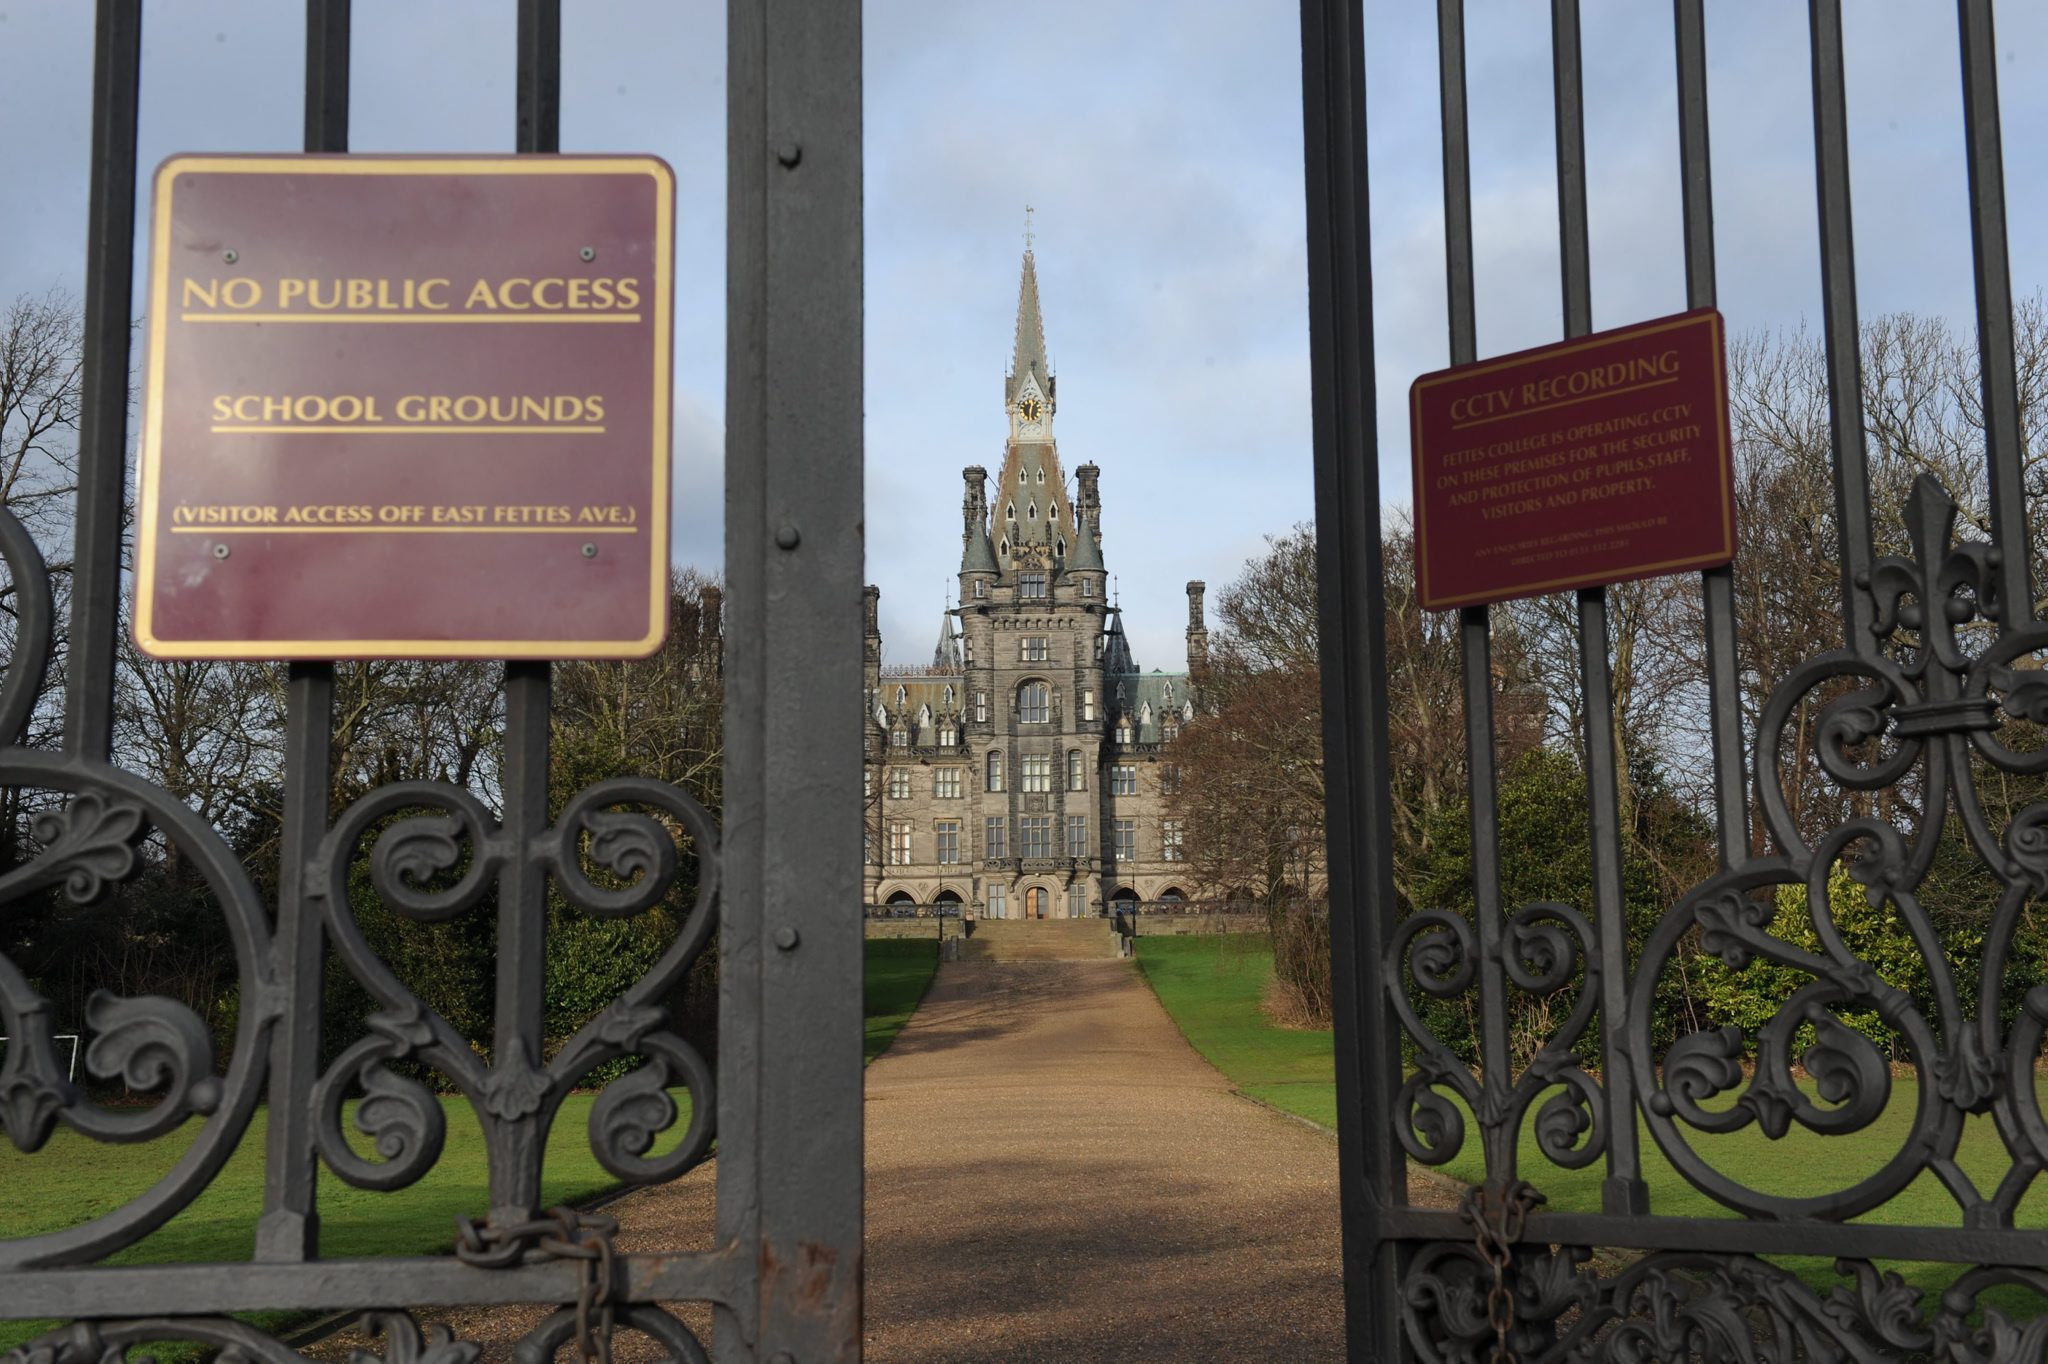 Privates schools such as Fettes in Edinburgh continue to be able to claim charitable status